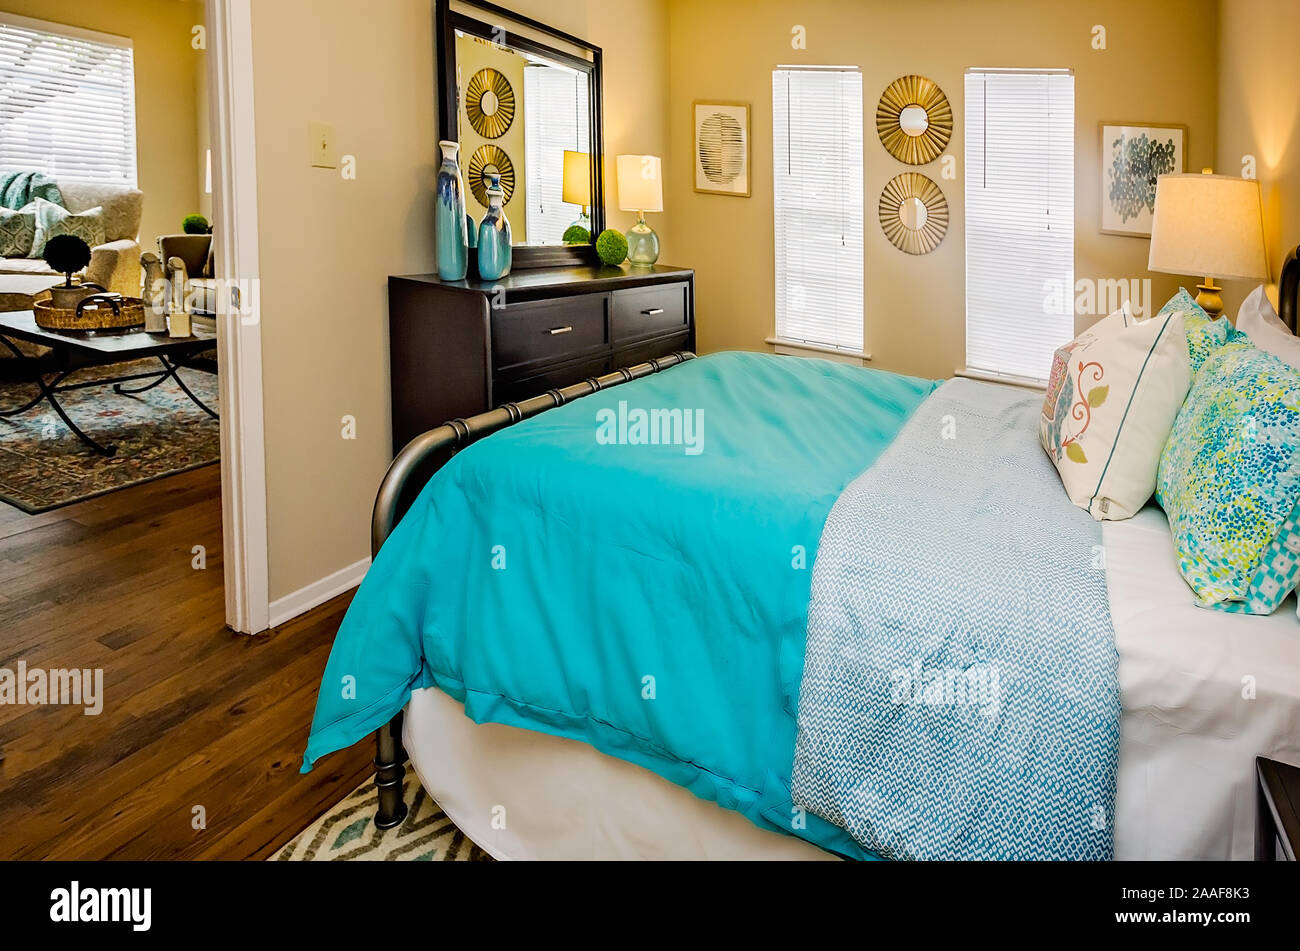 Small Bedroom Cramped High Resolution Stock Photography And Images Alamy